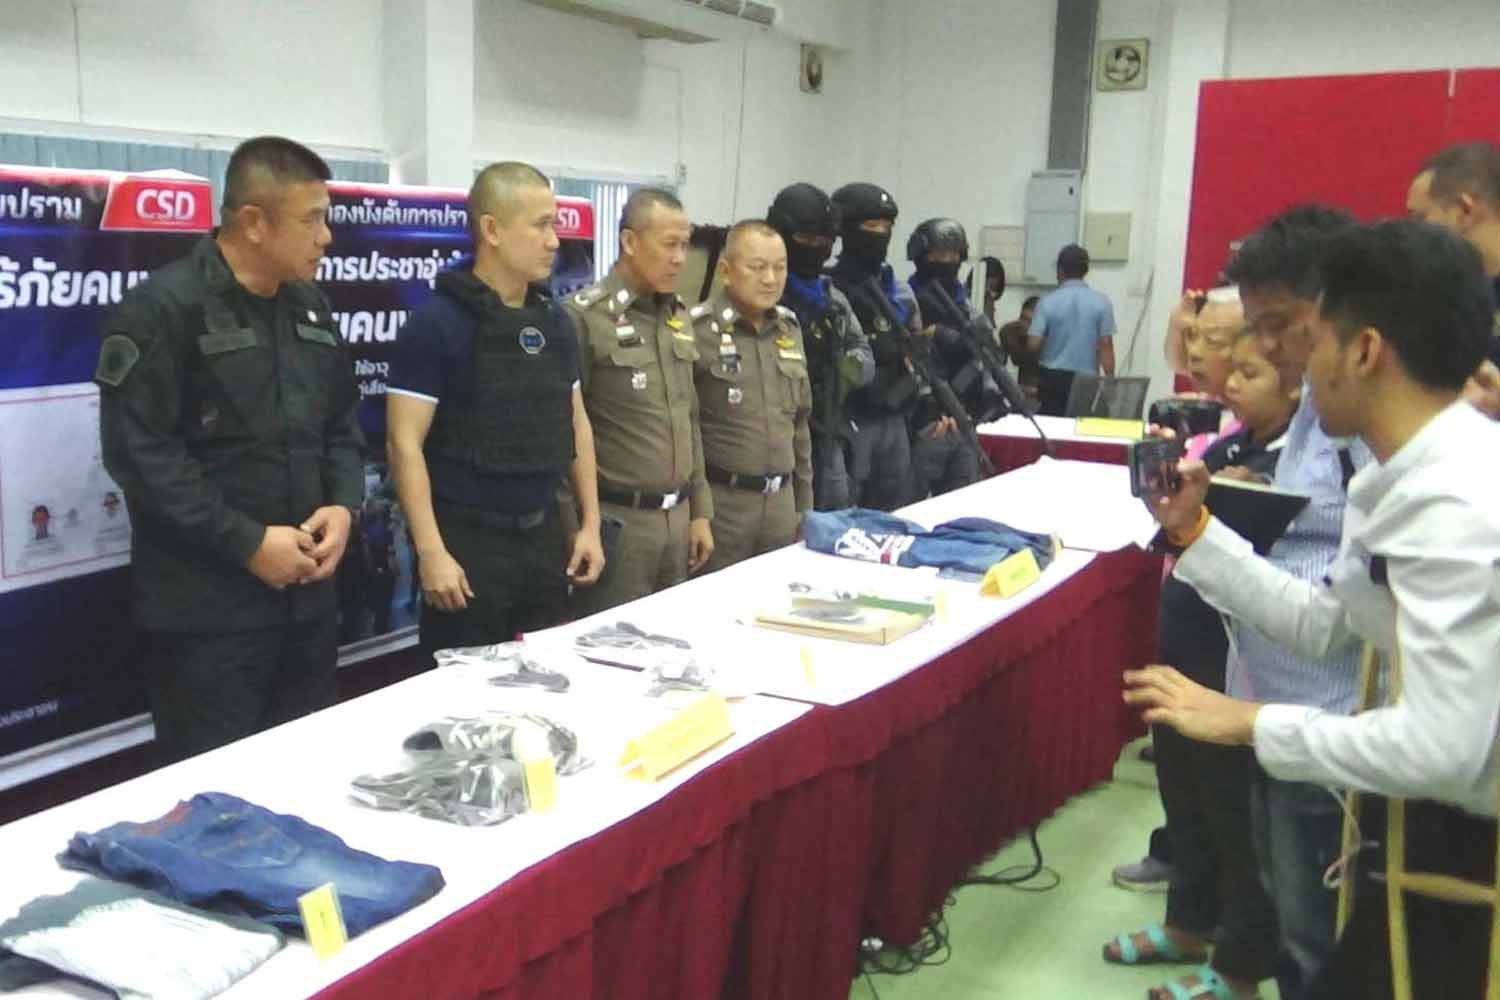 Senior police officers in Trang province on Sunday announce the arrest of seven suspects for the murder of a garage owner in the southern province last month. (Photo by Methee Muangkaew)